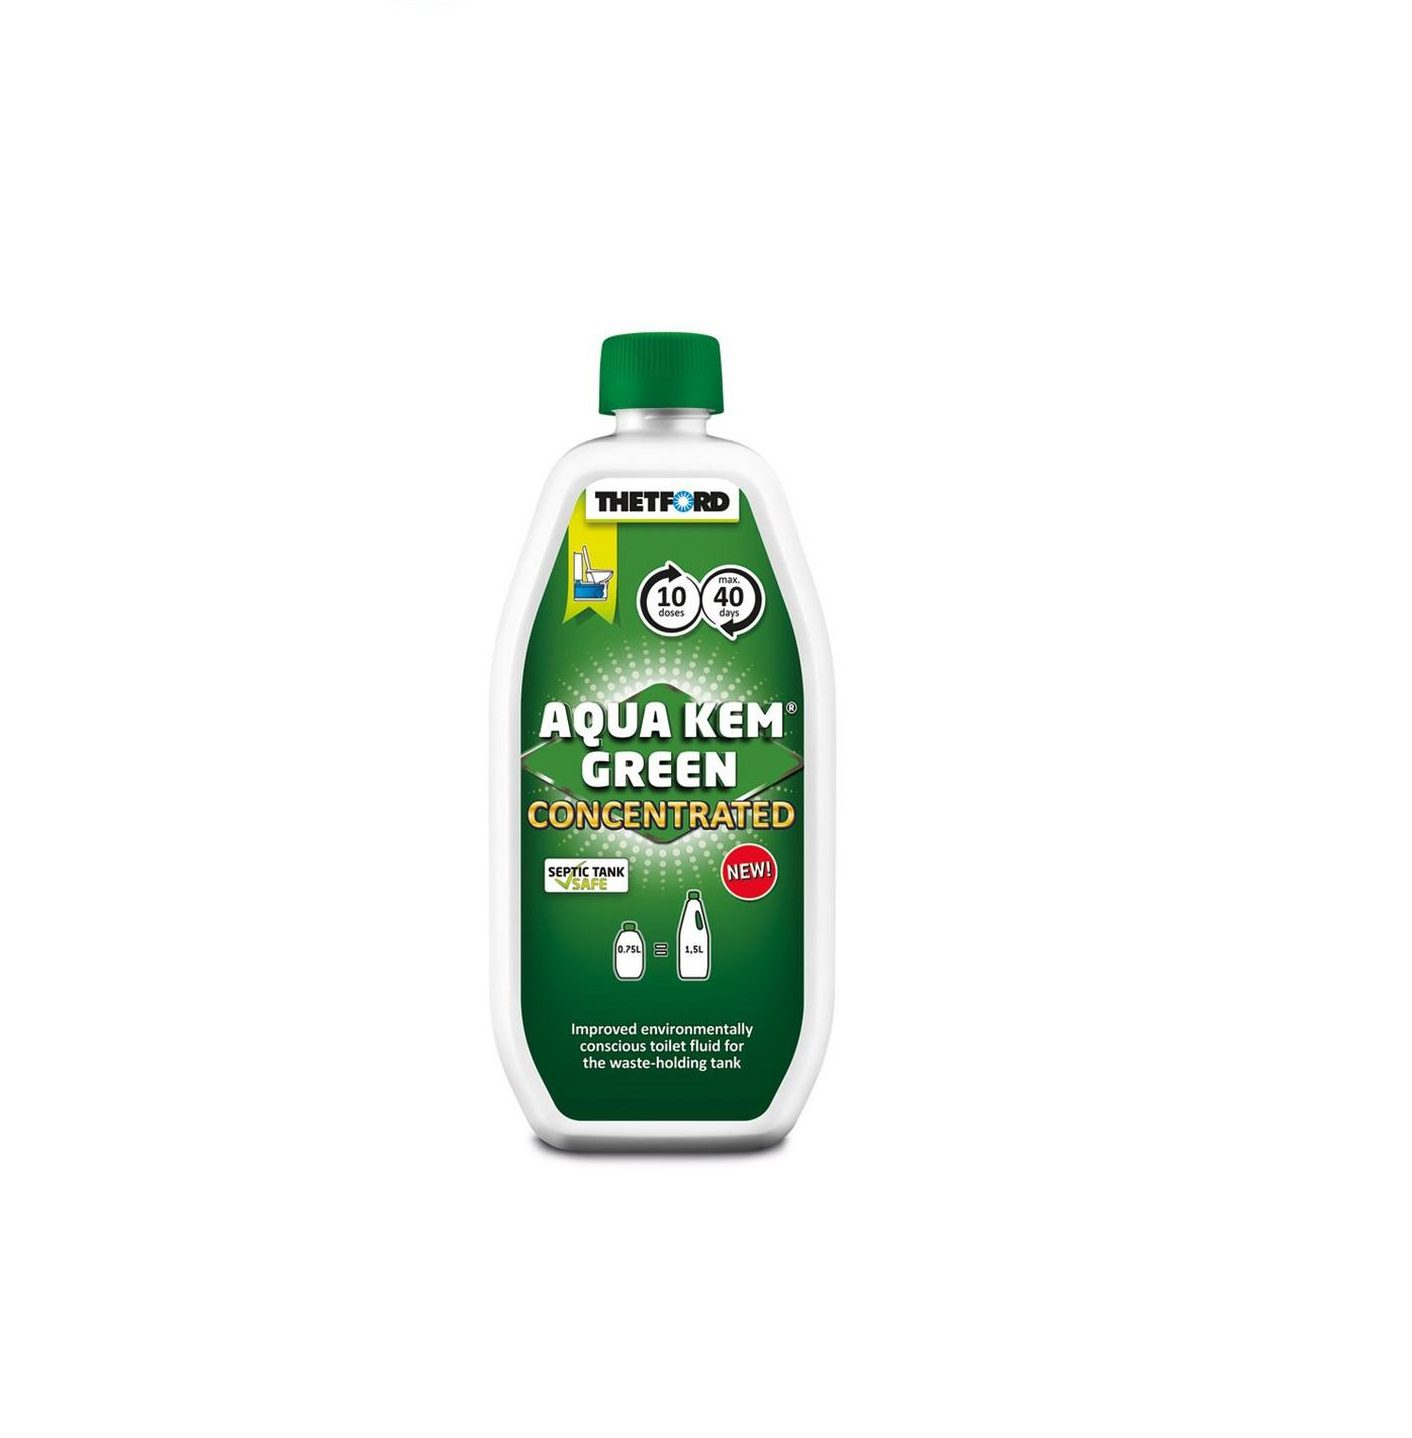 Thetford Aqua Kem Concentrated green